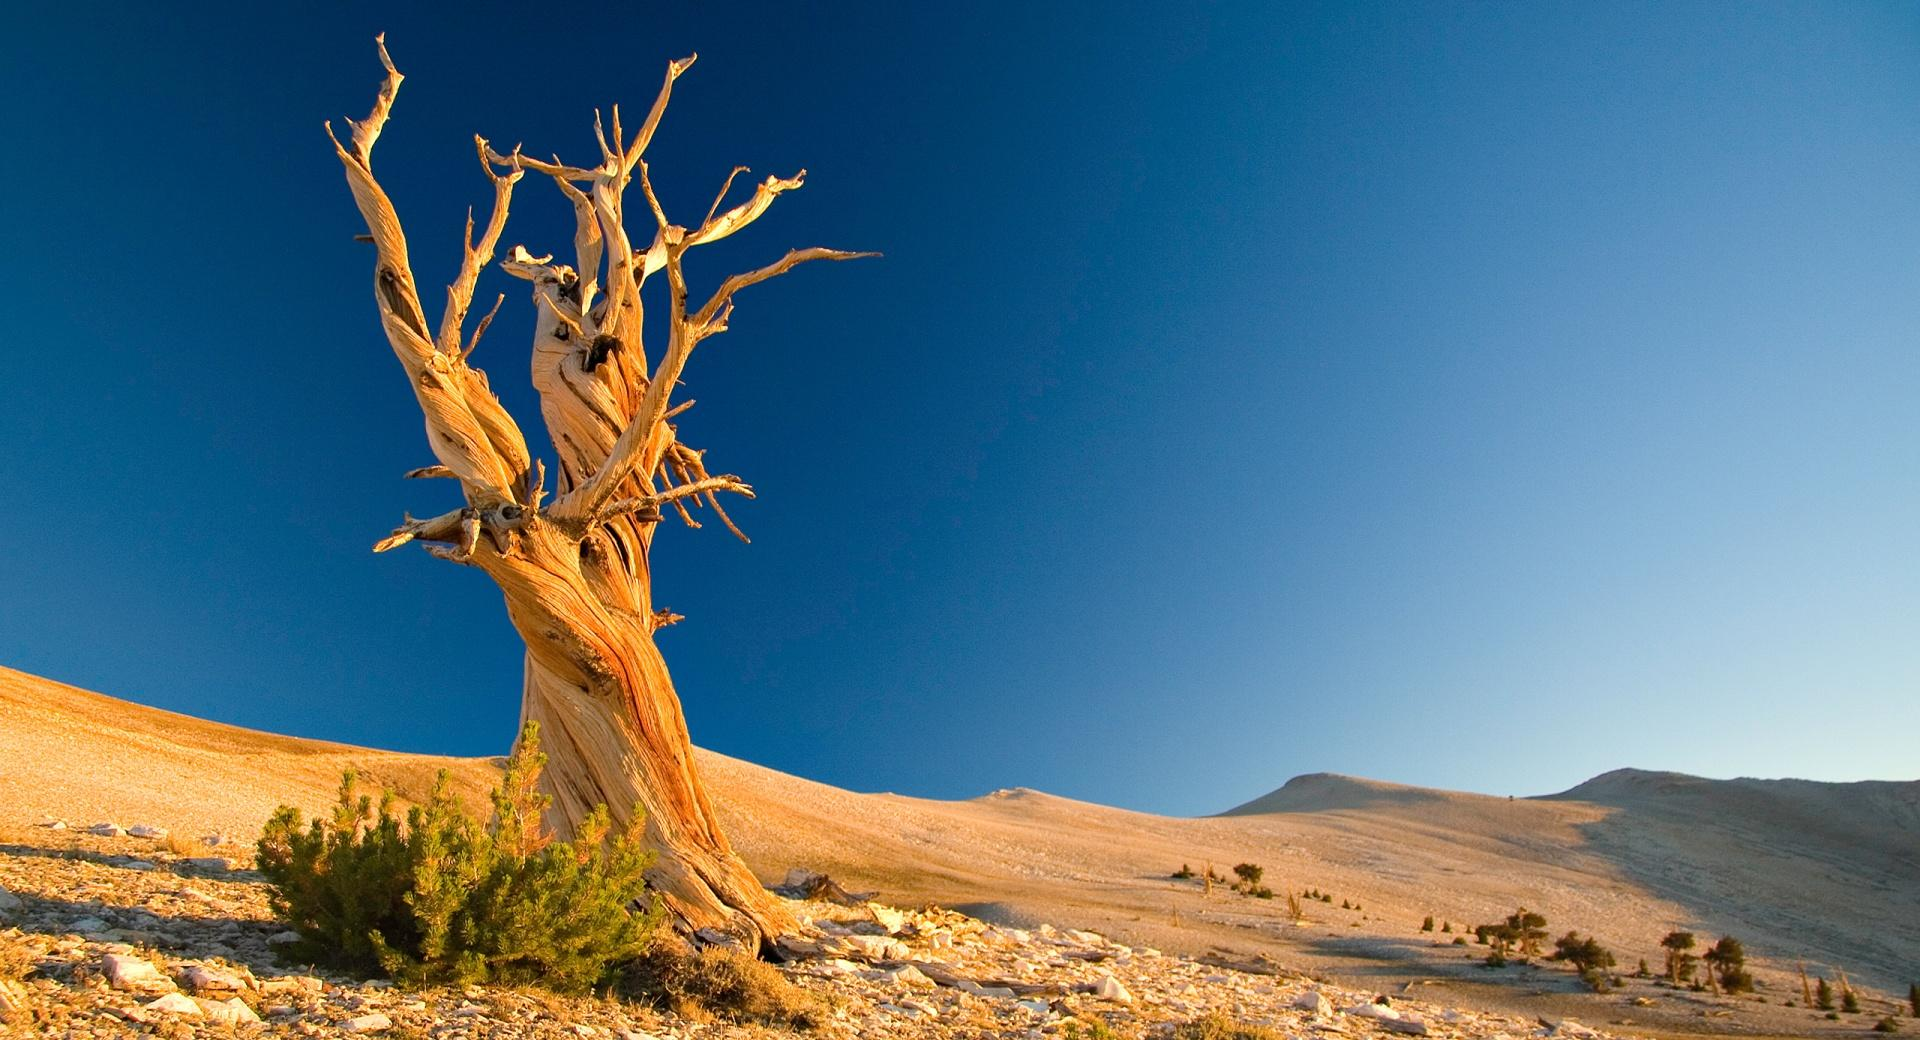 Desert Dead Tree wallpapers HD quality